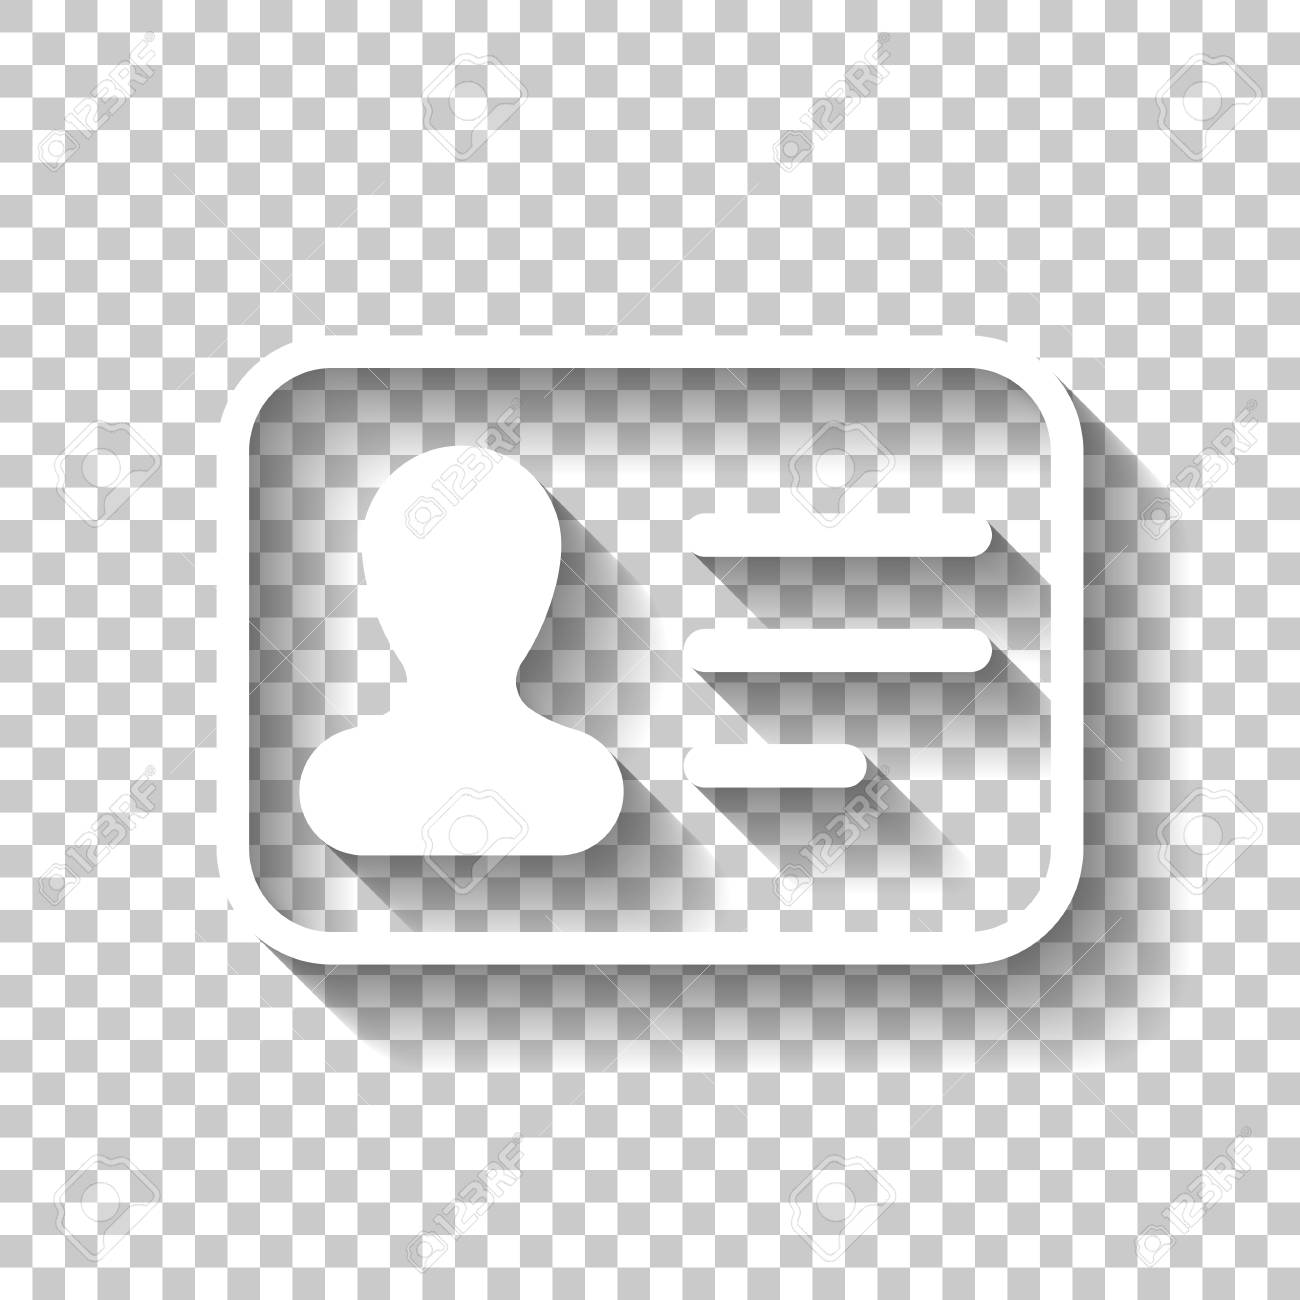 identification card icon id profile white icon with shadow royalty free cliparts vectors and stock illustration image 103145090 123rf com